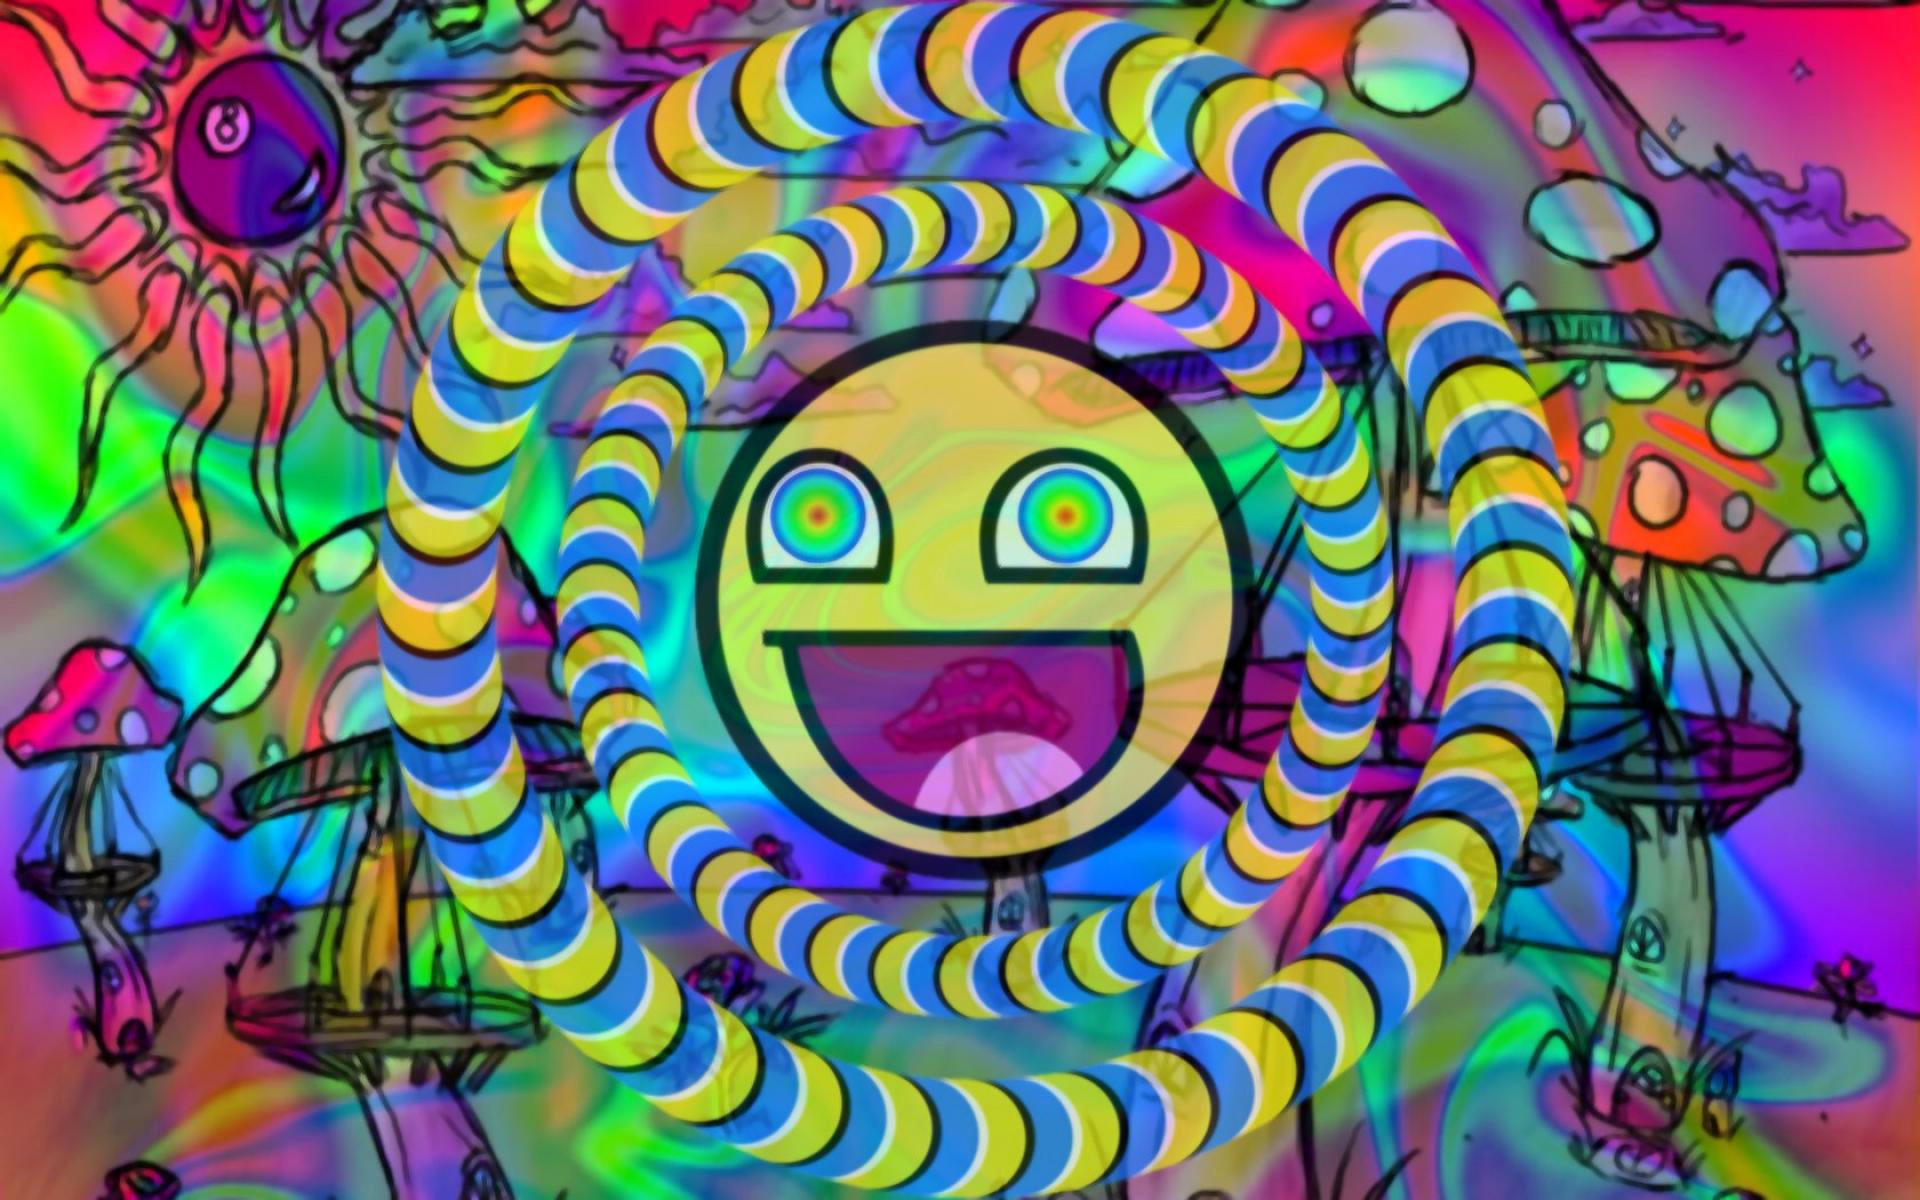 Res: 1920x1200, Cool Trippy Wallpaper Awesome Trippy Shroom Wallpapers Hd Impremedia Of  Best Of Cool Trippy Wallpaper